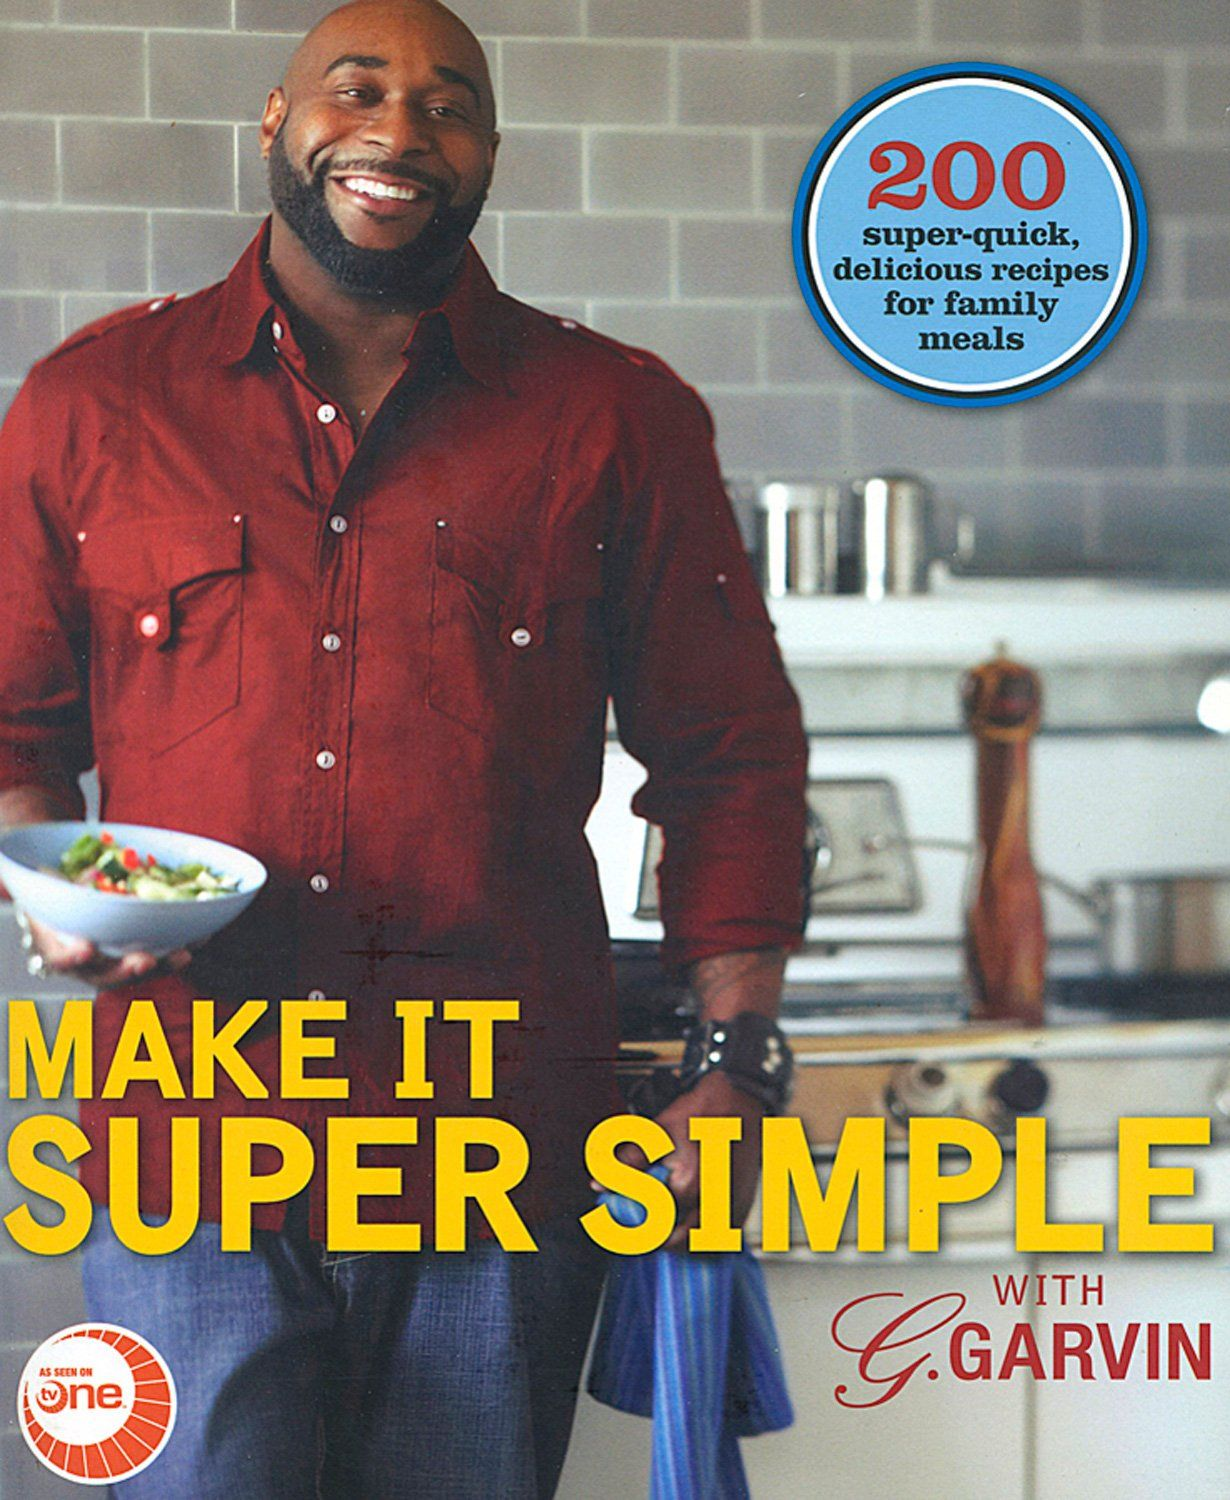 Make it Super Simple with G. Garvin: Gerry Garvin: 9780696238291: Amazon.com: Books